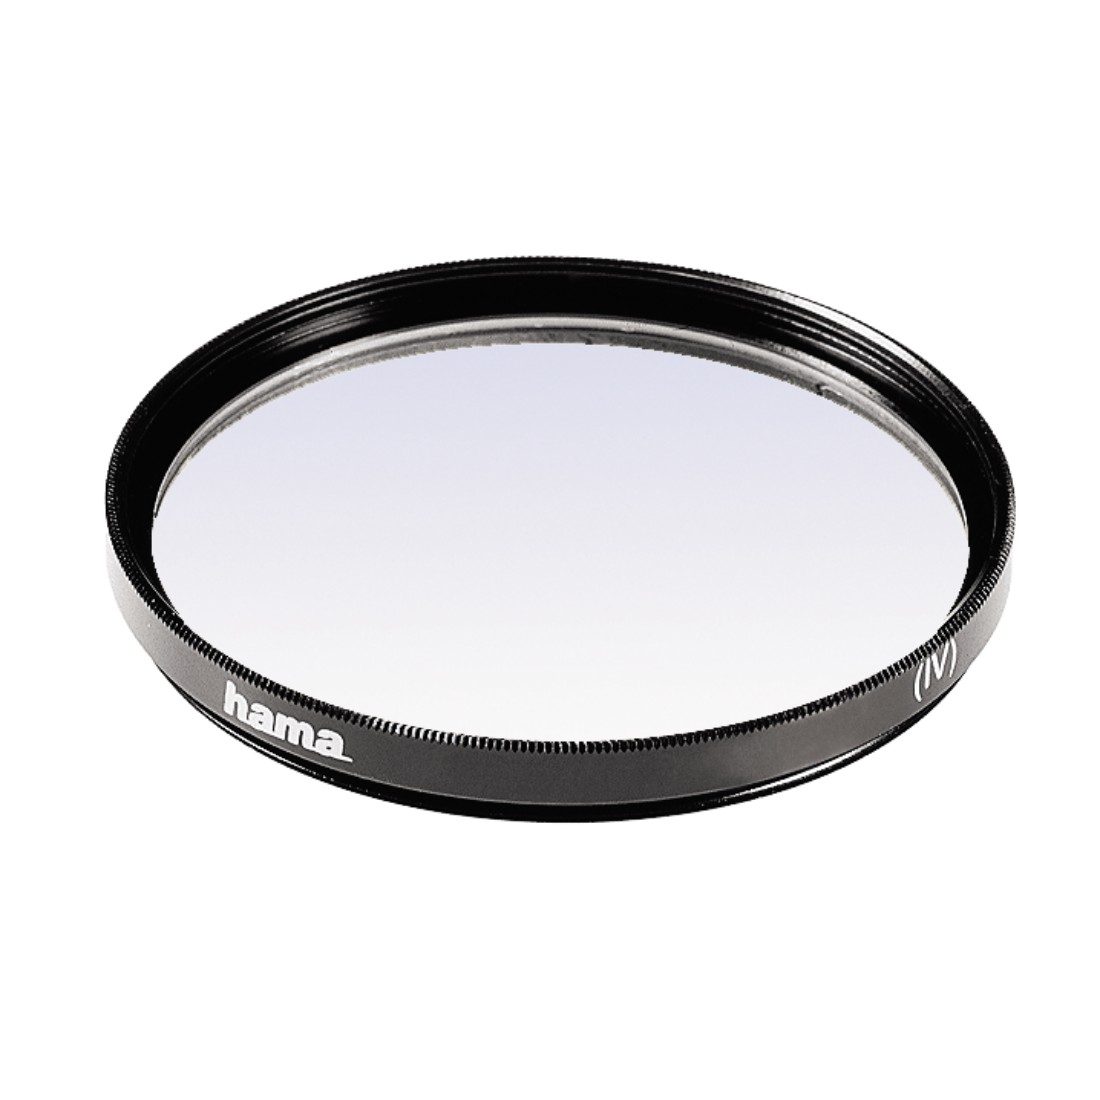 abx High-Res Image - Hama, UV Filter, coated, 37.0 mm